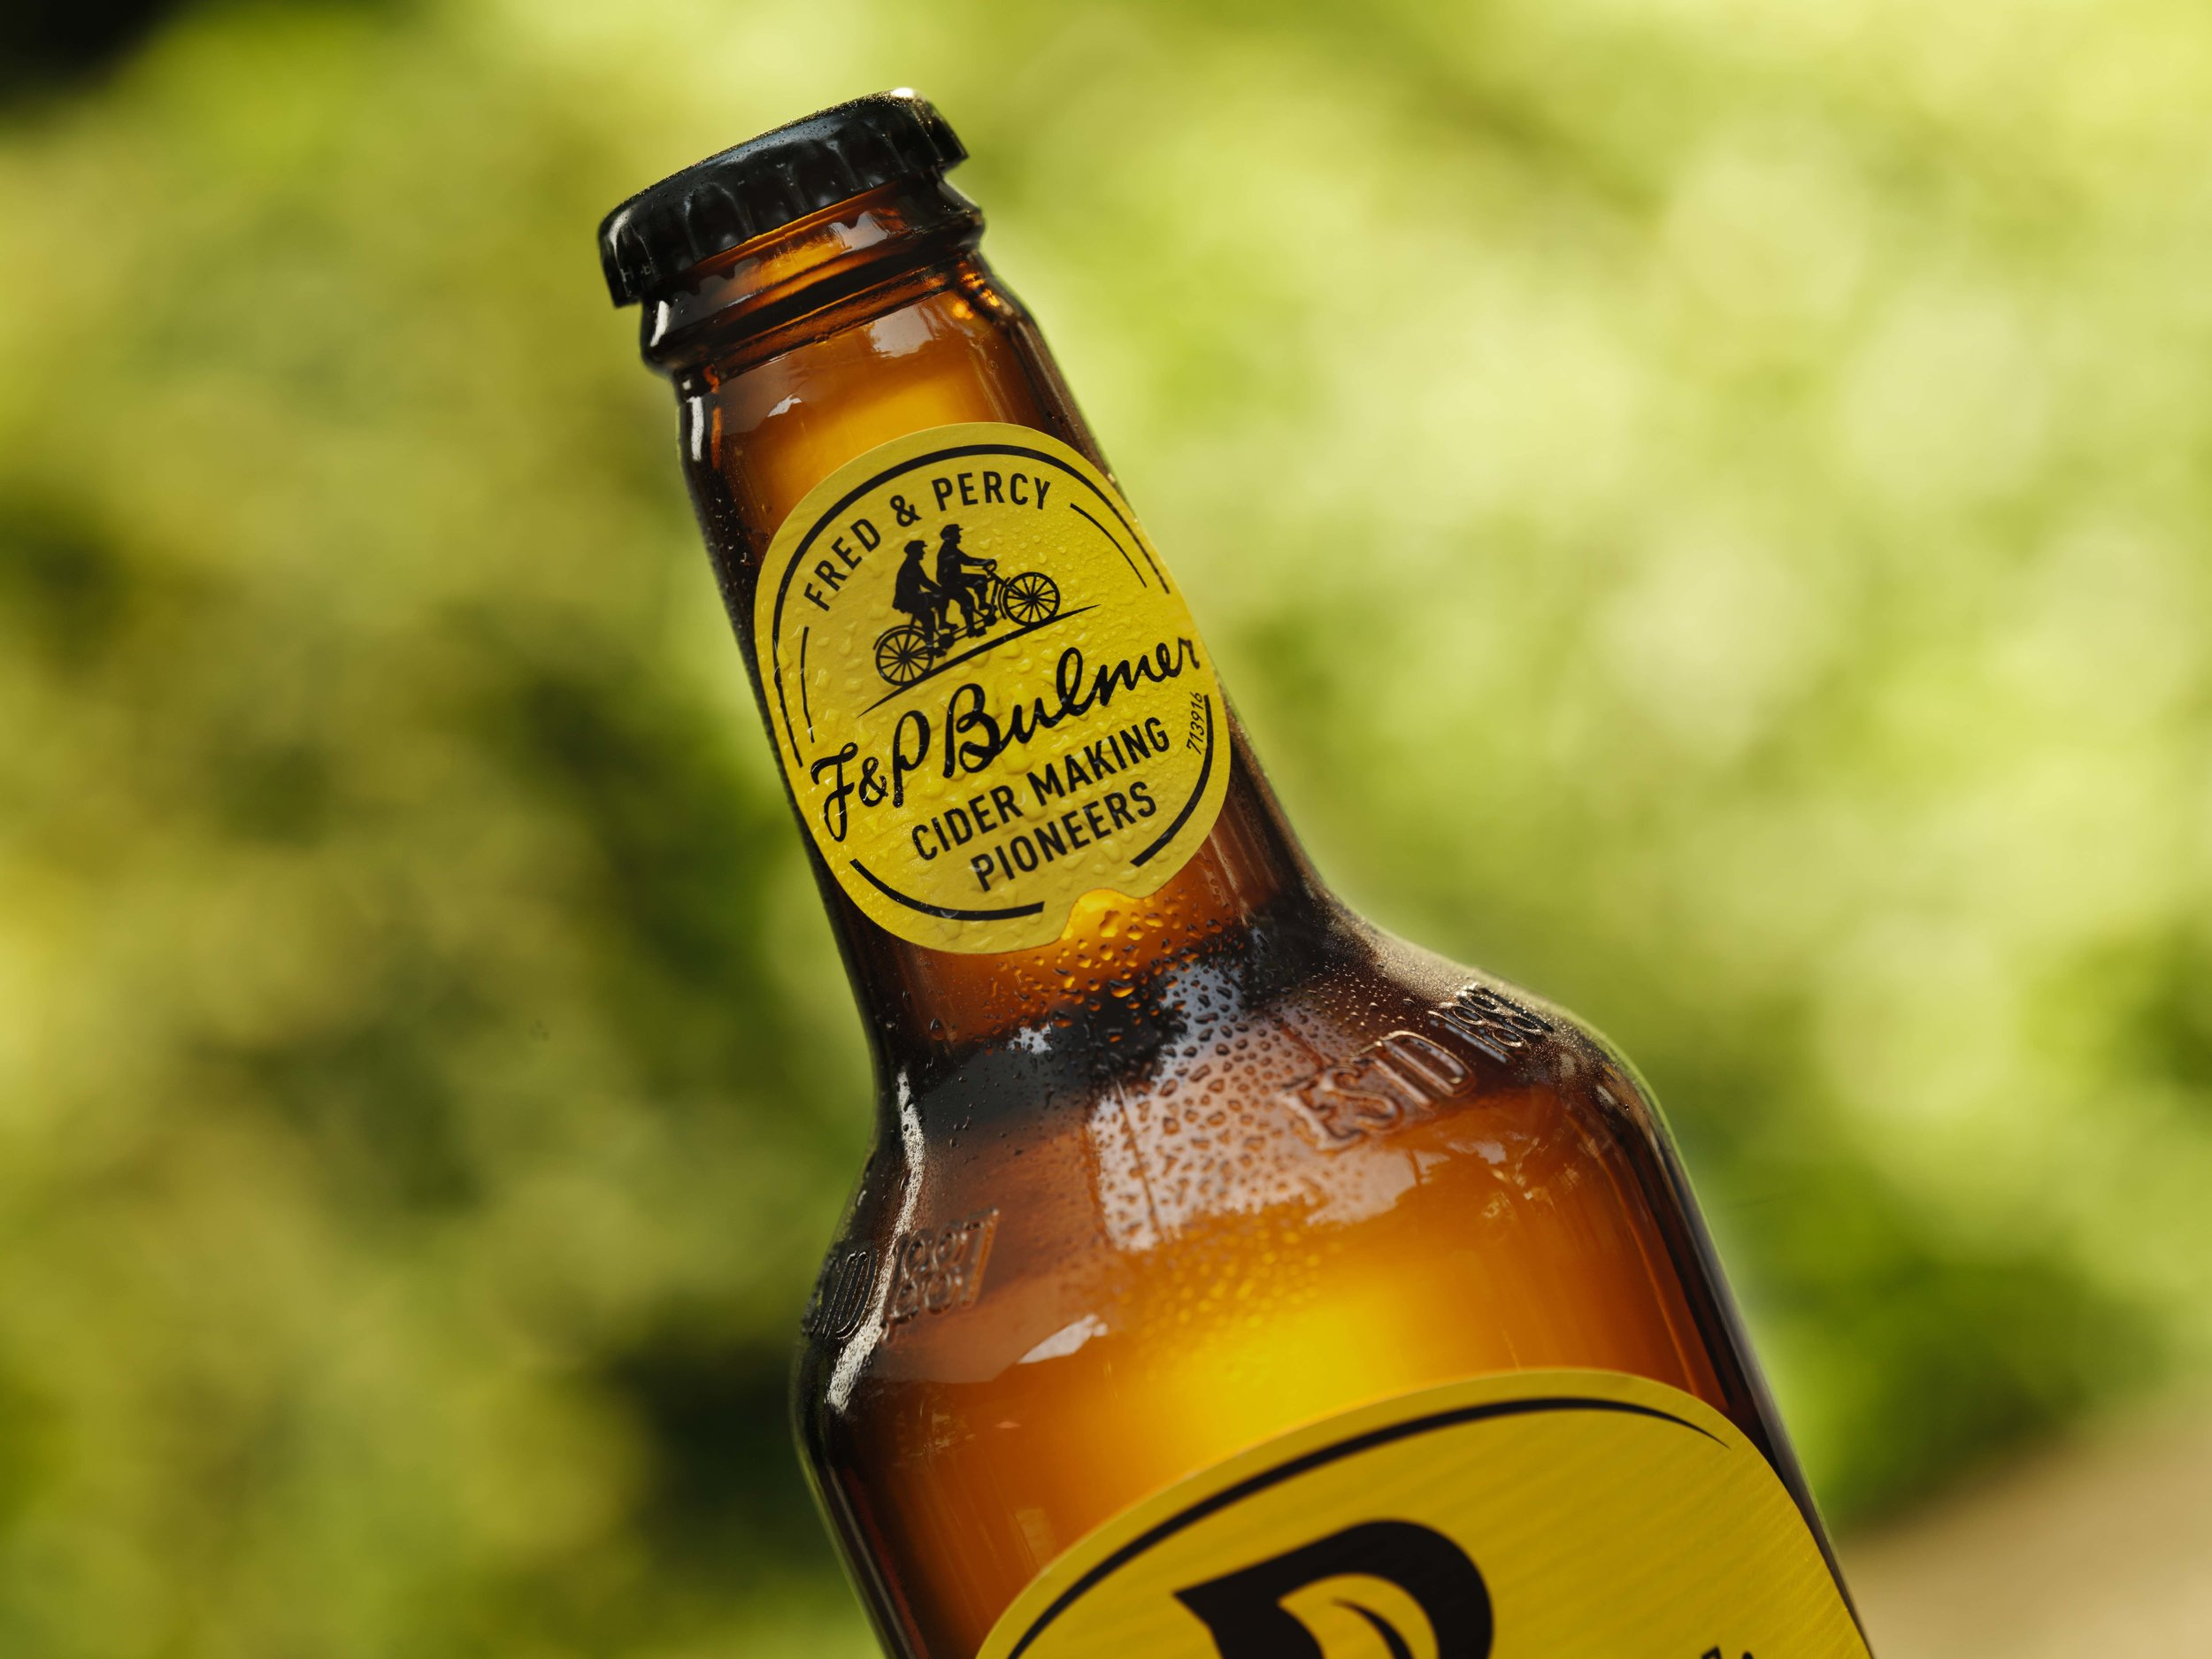 DH&Co-Drinks-Photography-Bulmers-Advertising-Cider-3.jpg